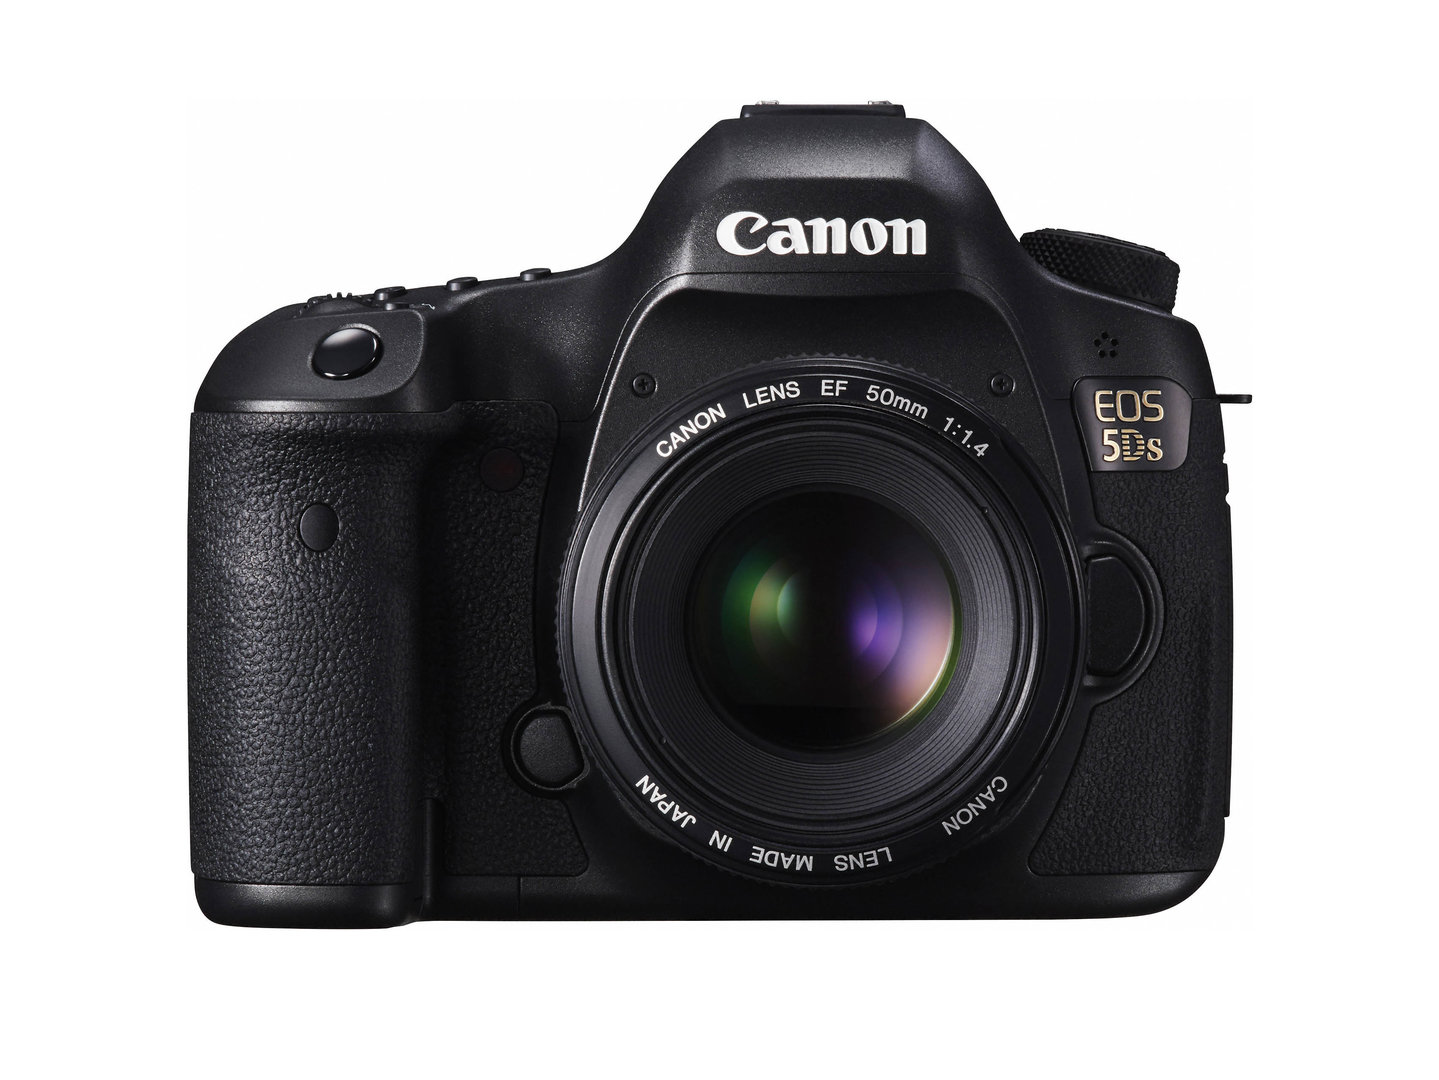 Canon EOS 5DS – Front